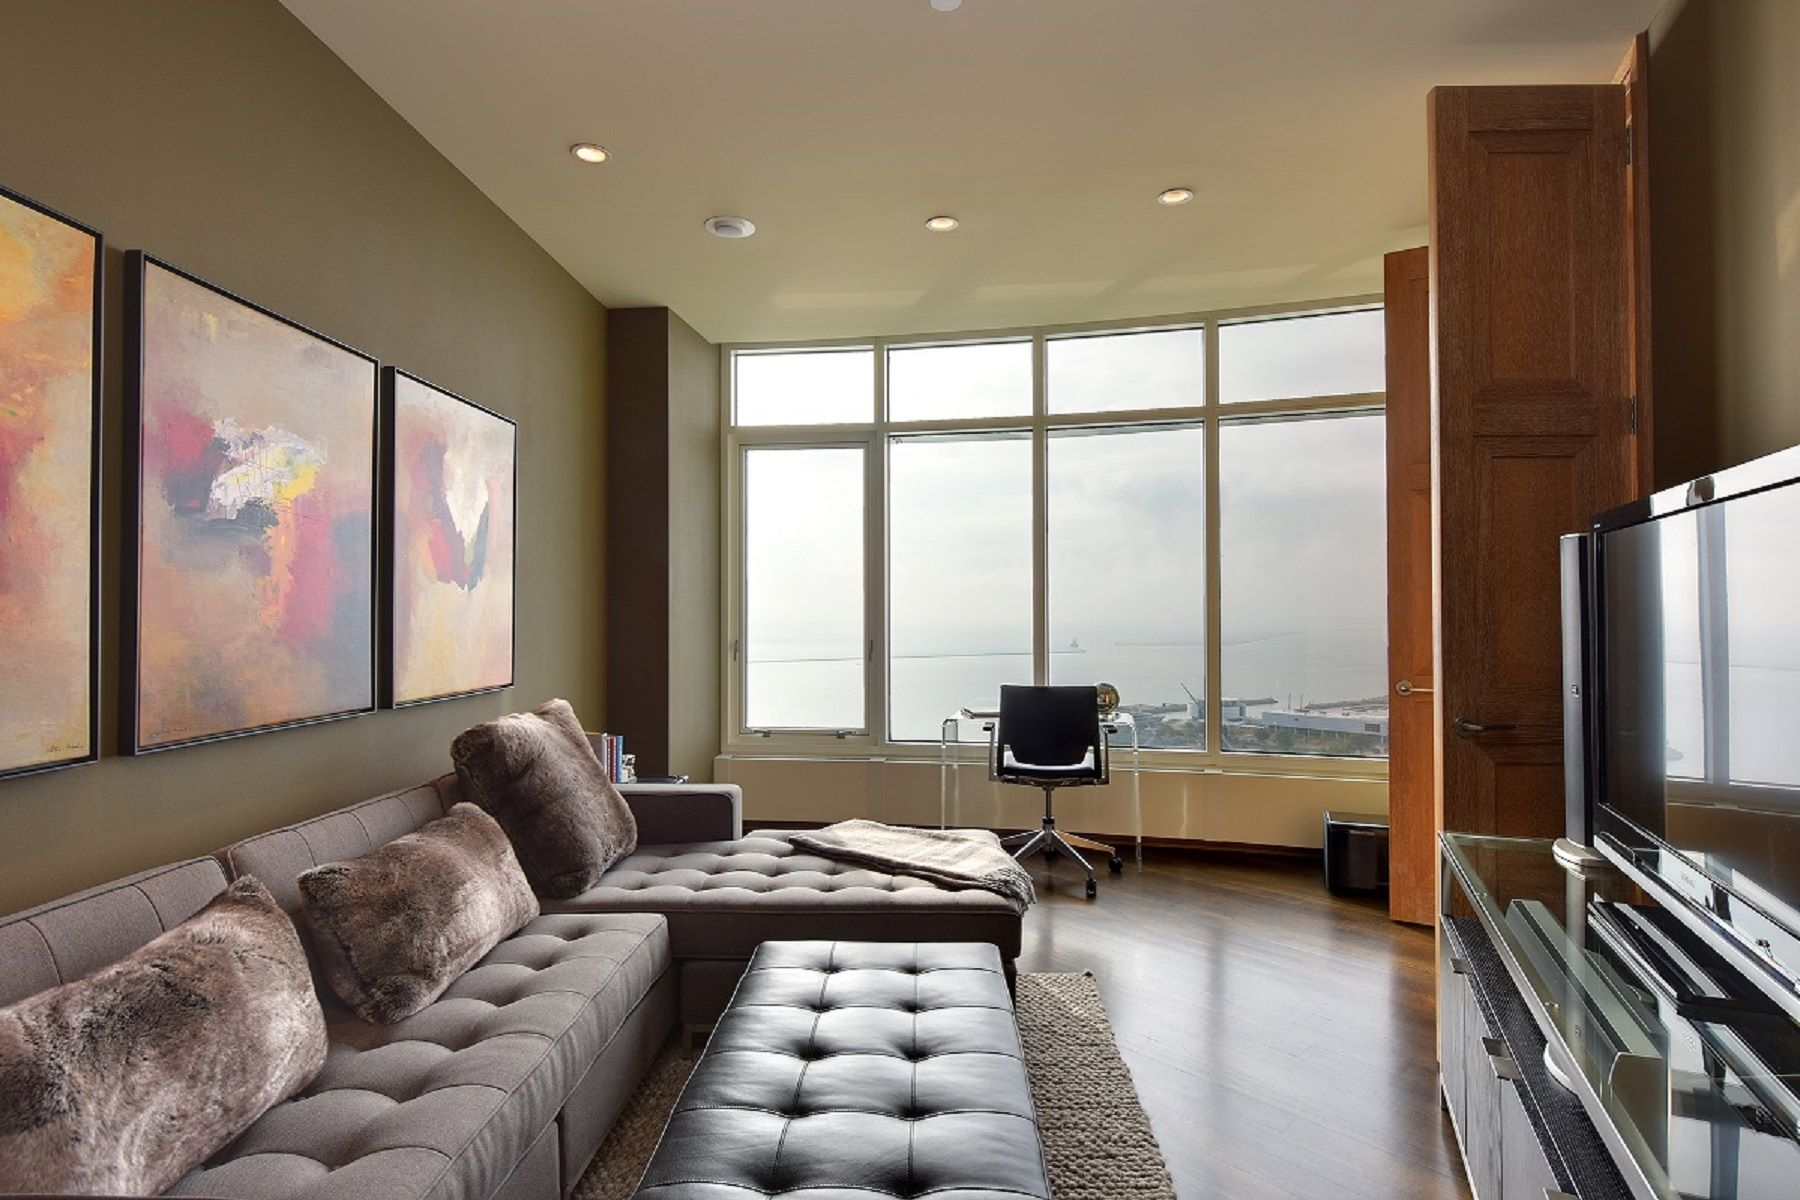 Additional photo for property listing at University Club Tower 825 N. Prospect Avenue 2102 Milwaukee, Wisconsin 53202 United States